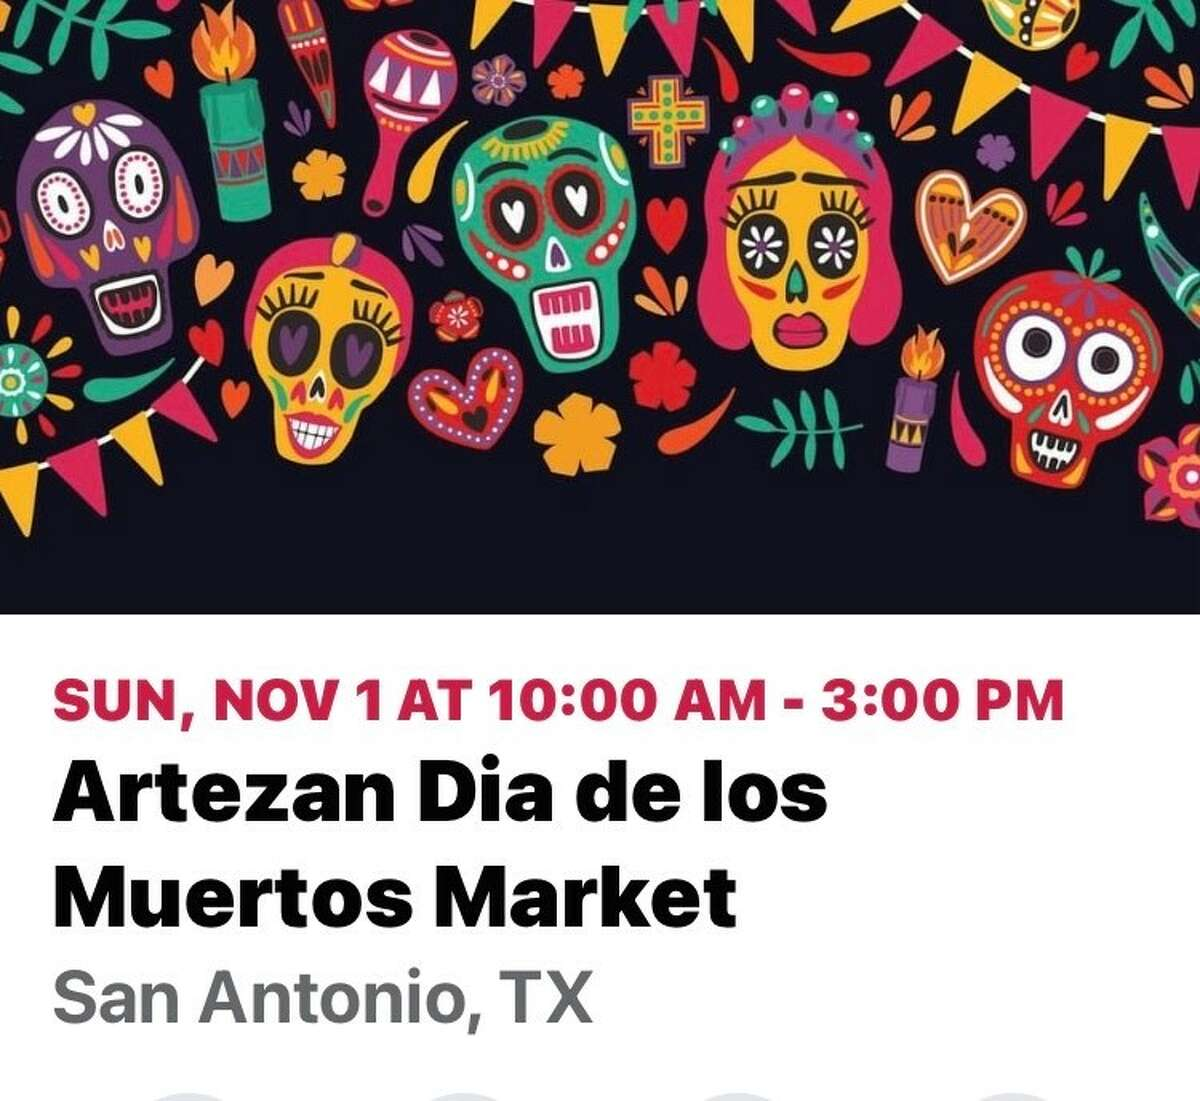 A Día de los Muertos market will take over a South Side venue on Nov. 1 with local vendors, artists and an altar.